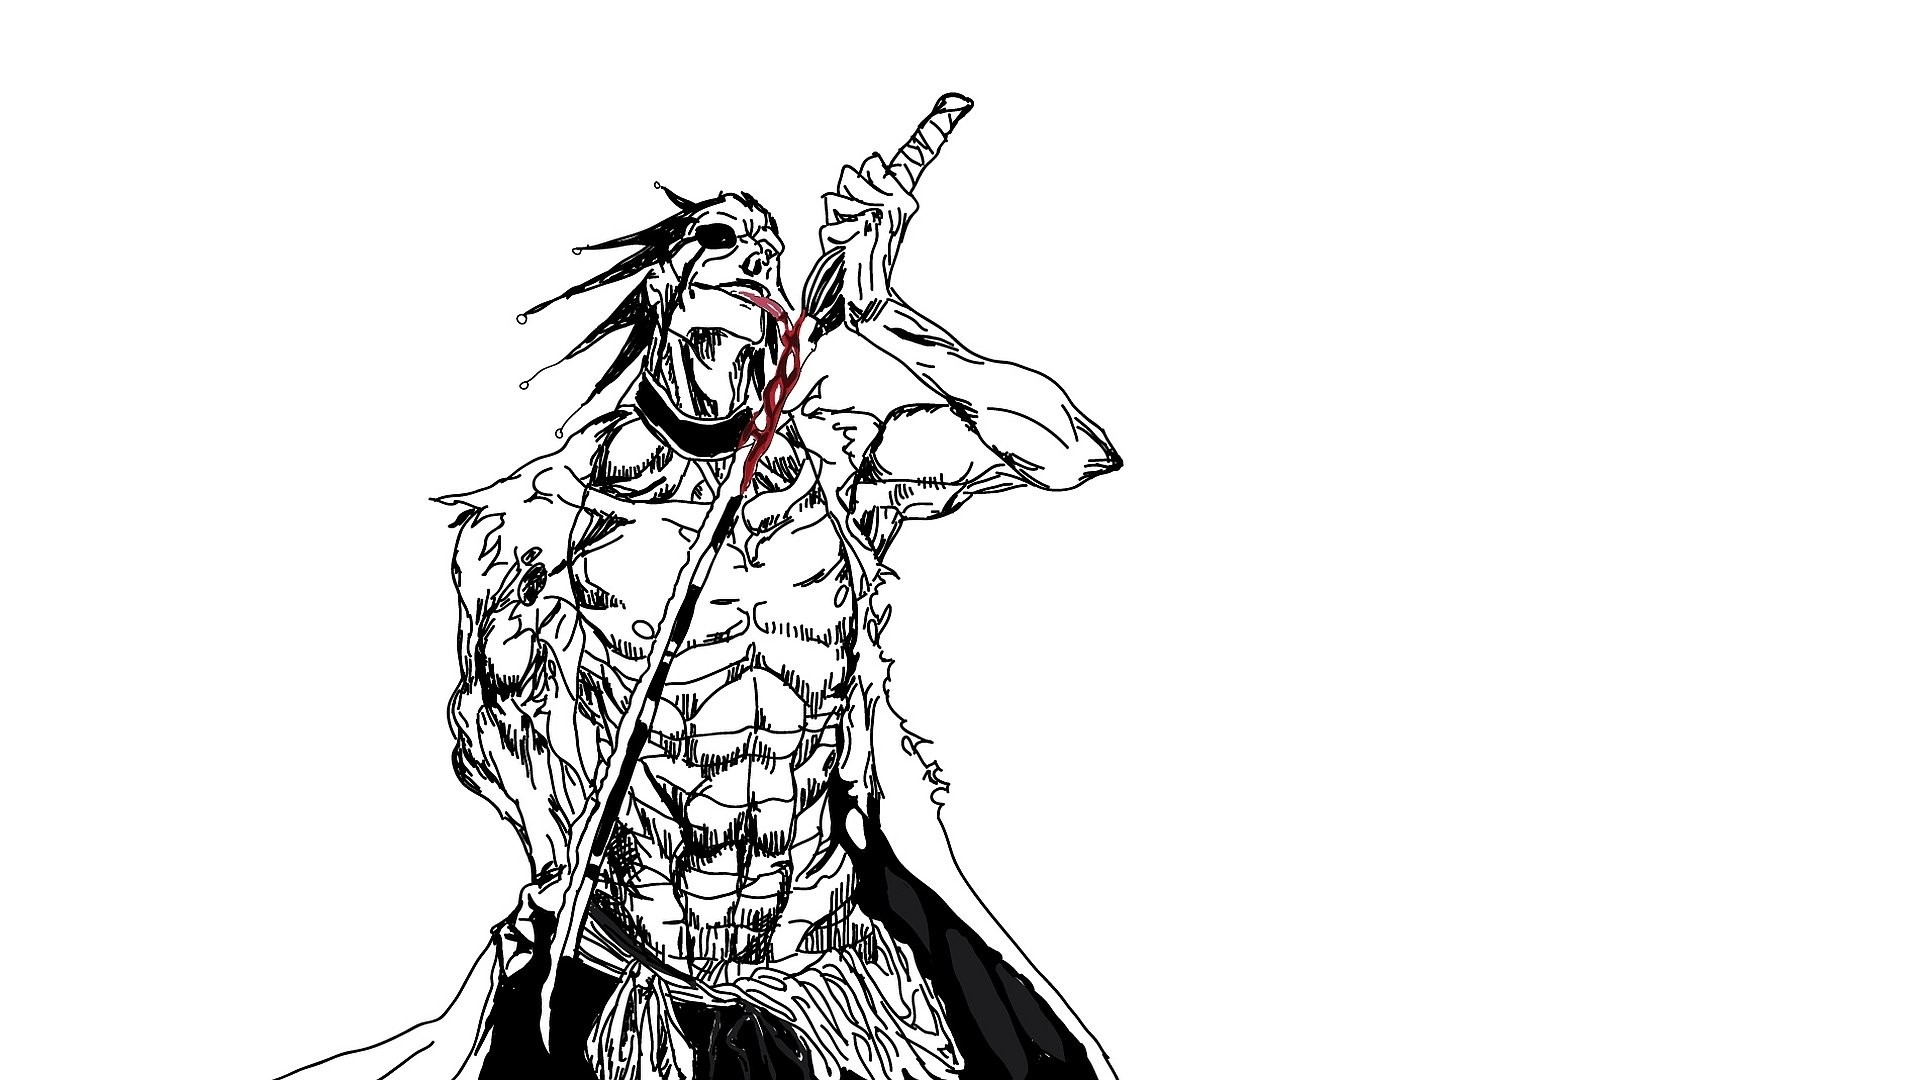 1920x1080 Anime - Bleach Kenpachi Zaraki Wallpaper